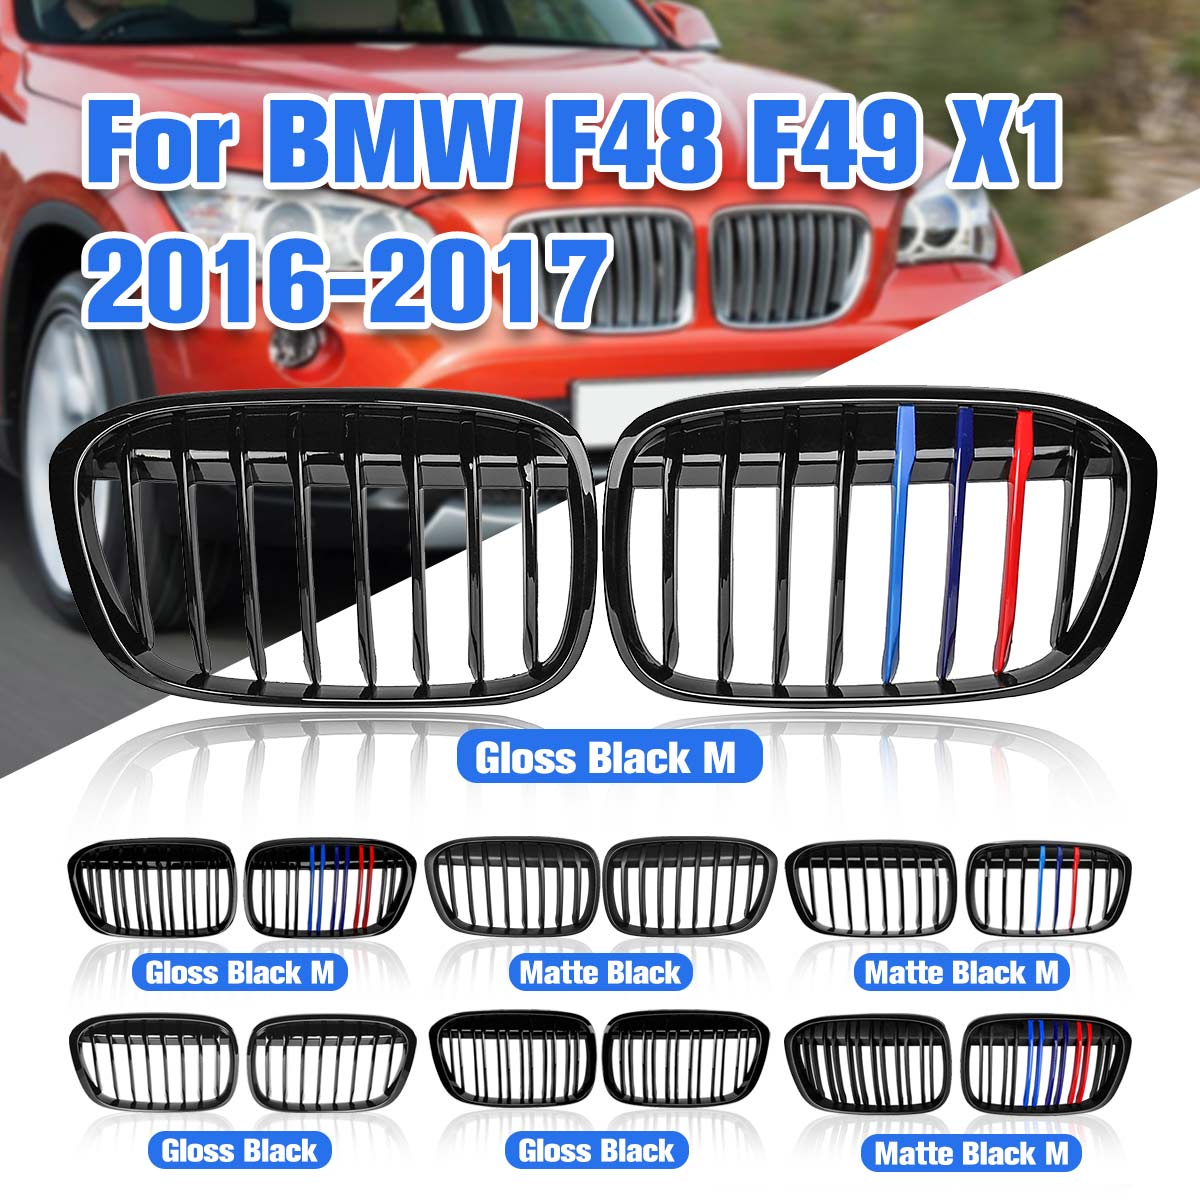 Pair Matte Black/Gloss Black M-Color Front Kidney Grill Grille For BMW F48 F49 X1 2016-2017 Car StylingPair Matte Black/Gloss Black M-Color Front Kidney Grill Grille For BMW F48 F49 X1 2016-2017 Car Styling